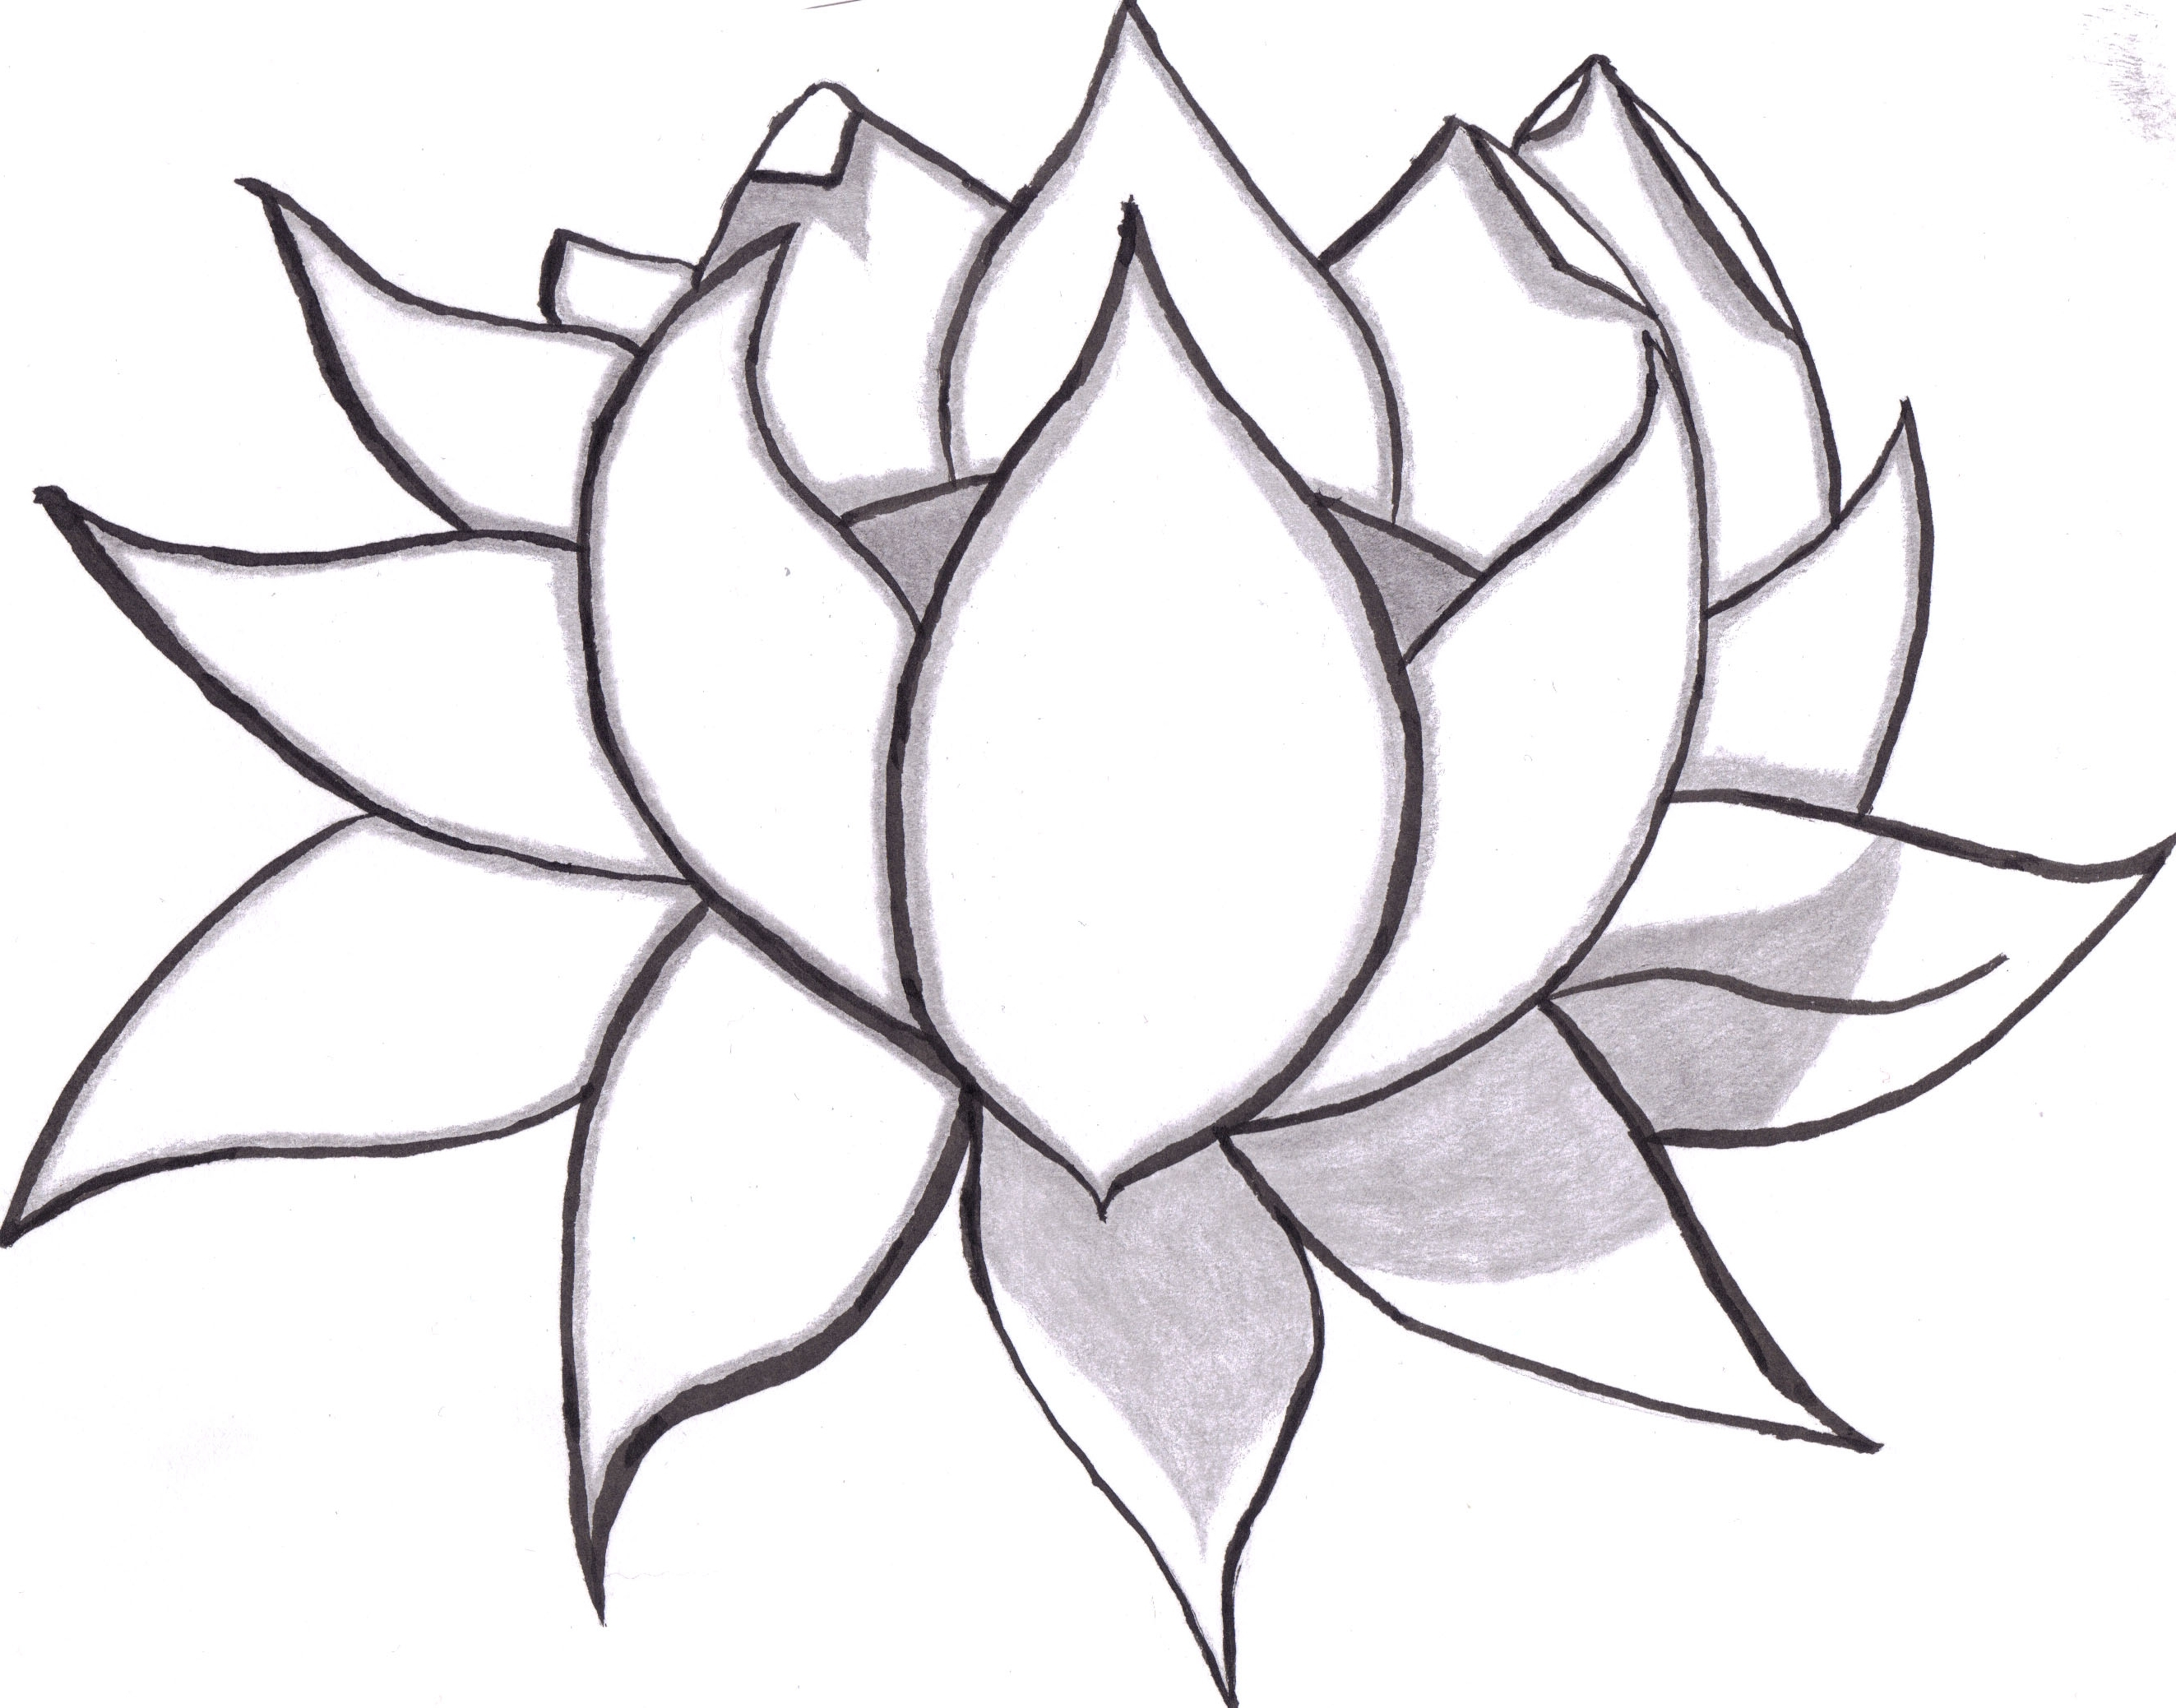 Rose Flower Pencil Drawing At Getdrawings Com Free For Personal